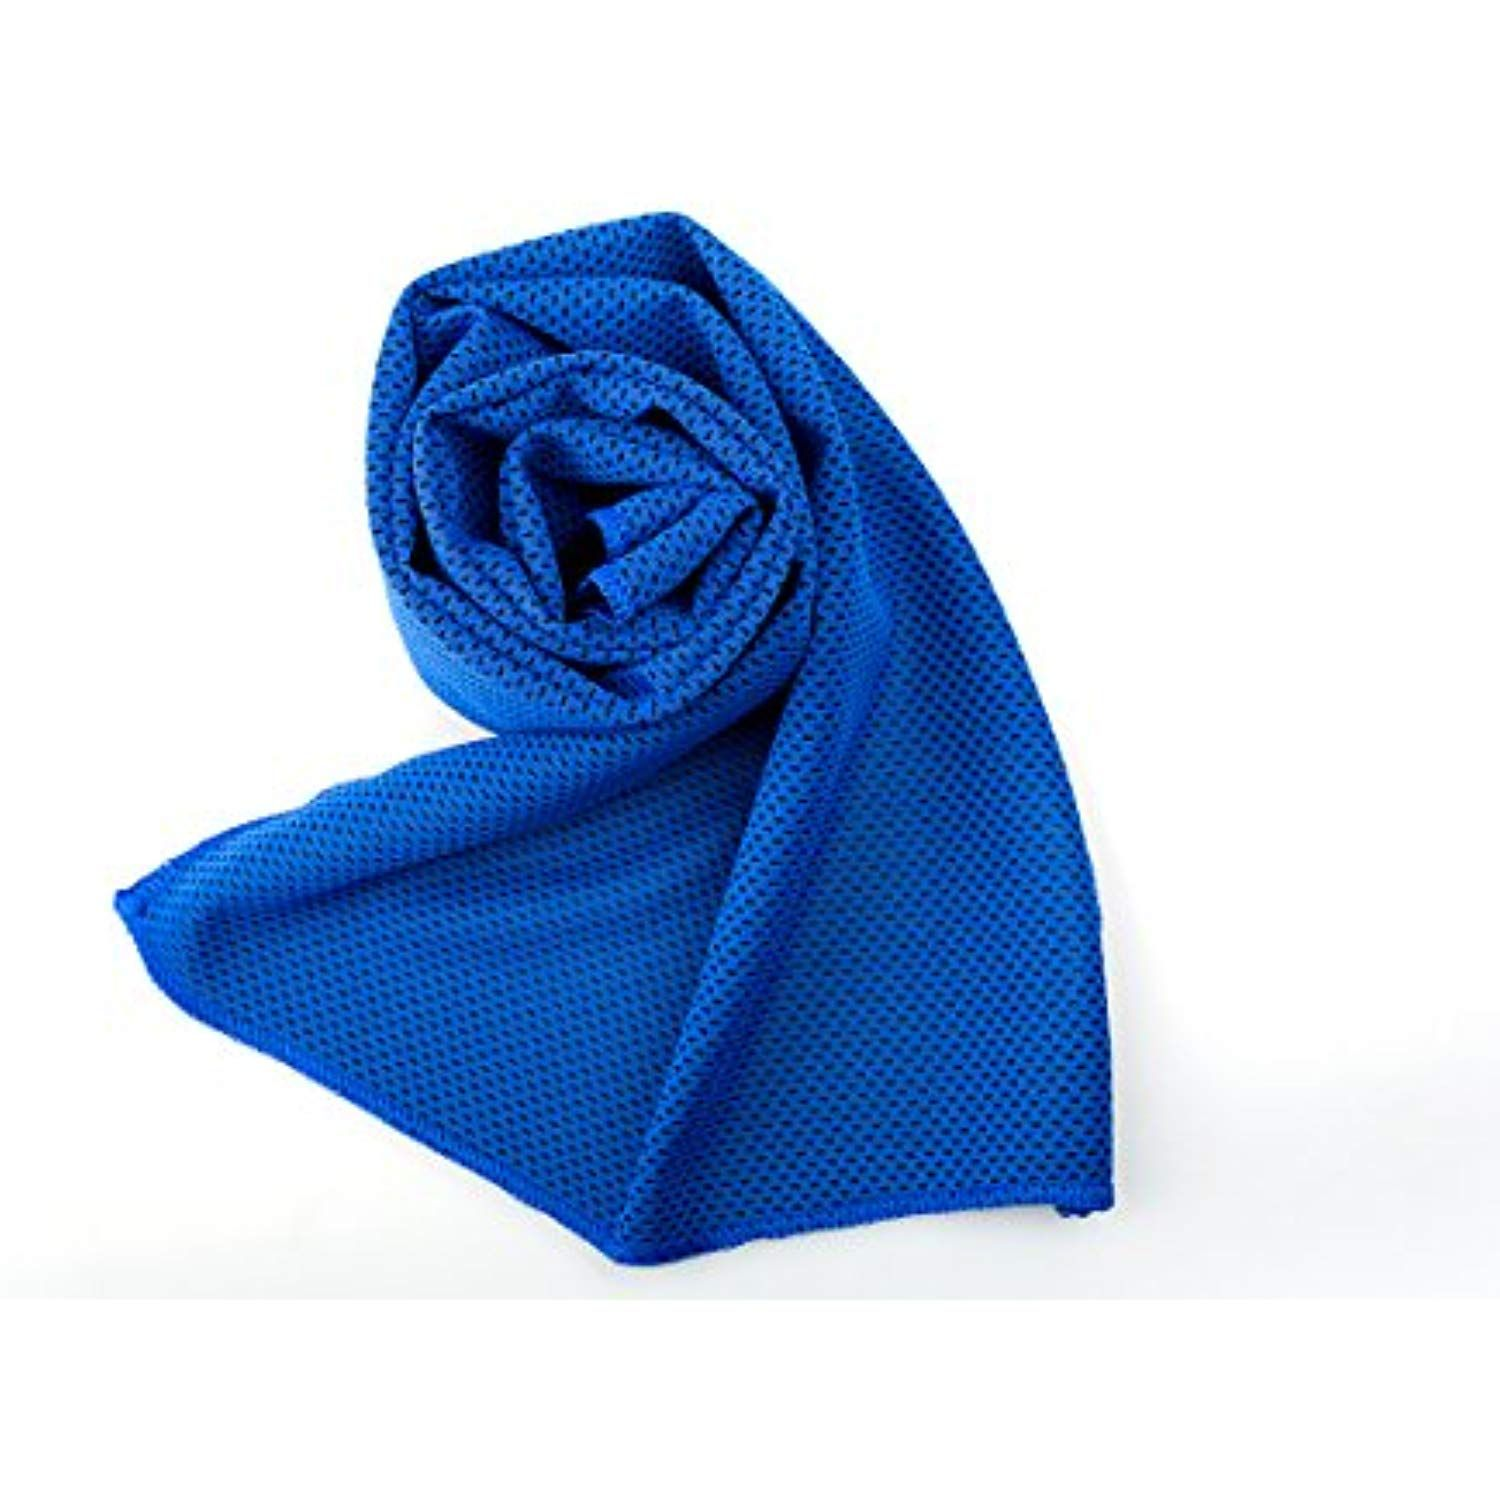 O Brighton Cooling Towel For Instant Cooling Relief Chilling Neck